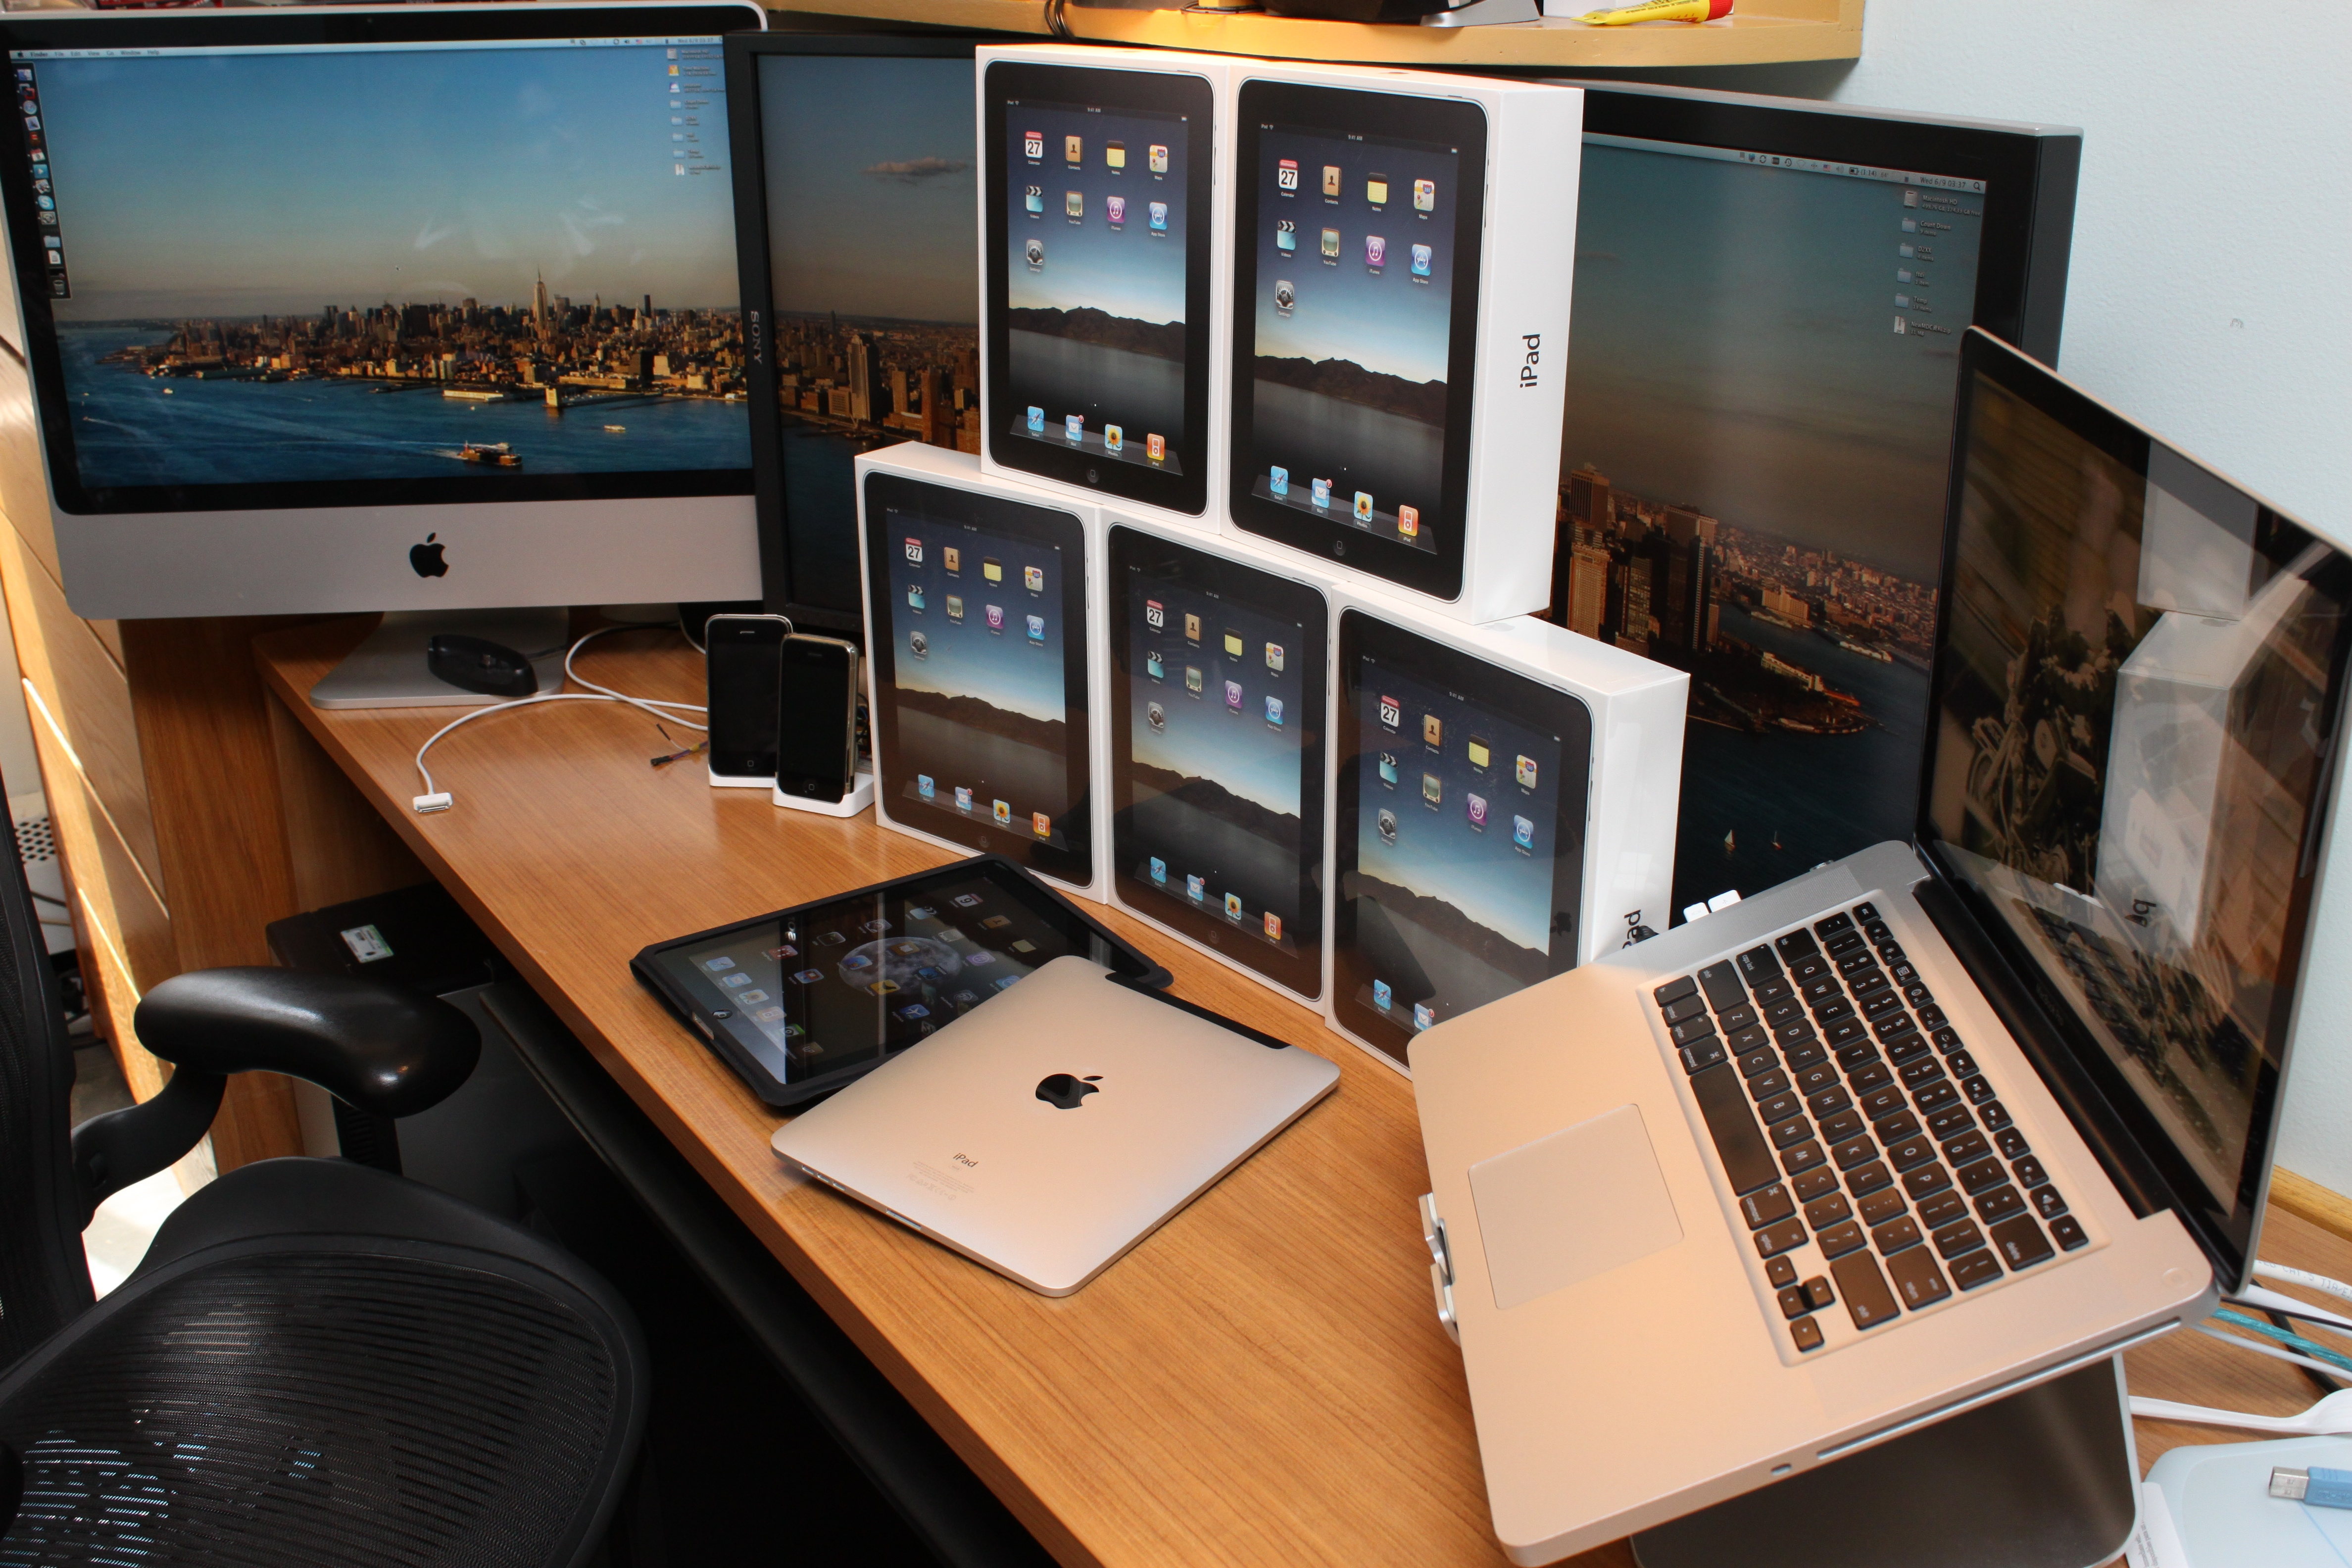 Office desk with imac, iphone and lots of ipads